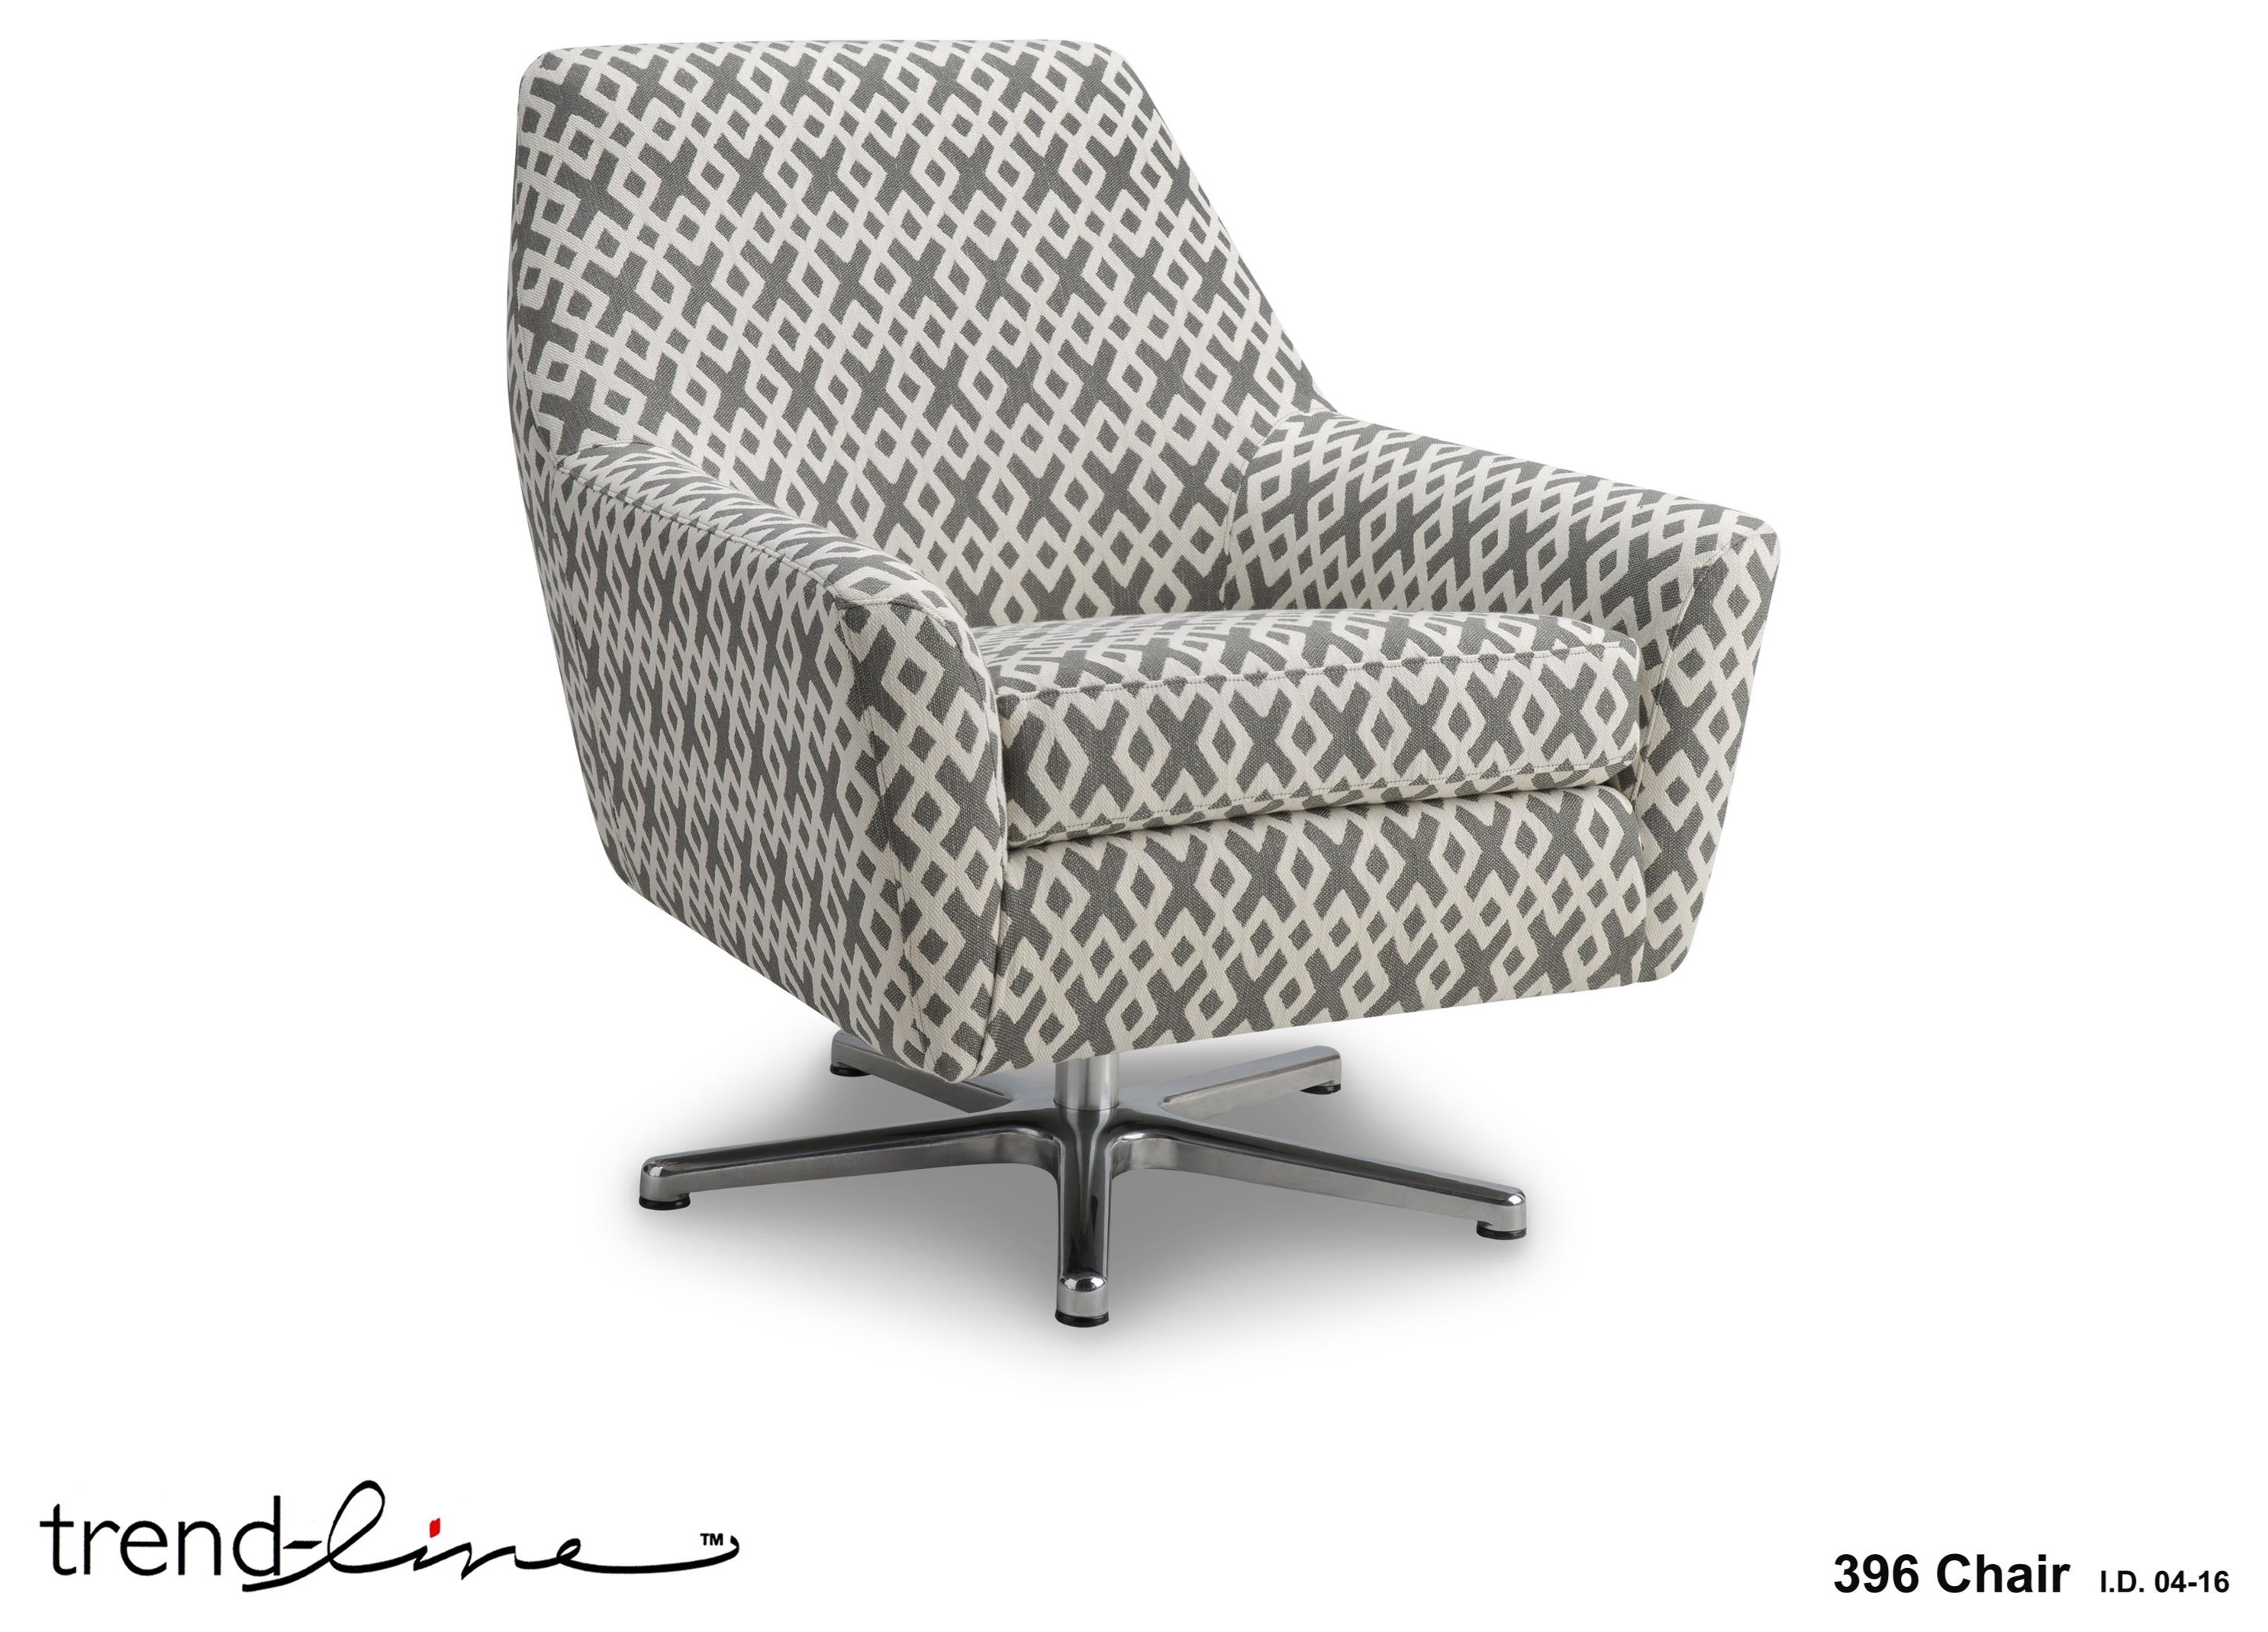 396 Dd Highrise Chair by Trendline at Stoney Creek Furniture